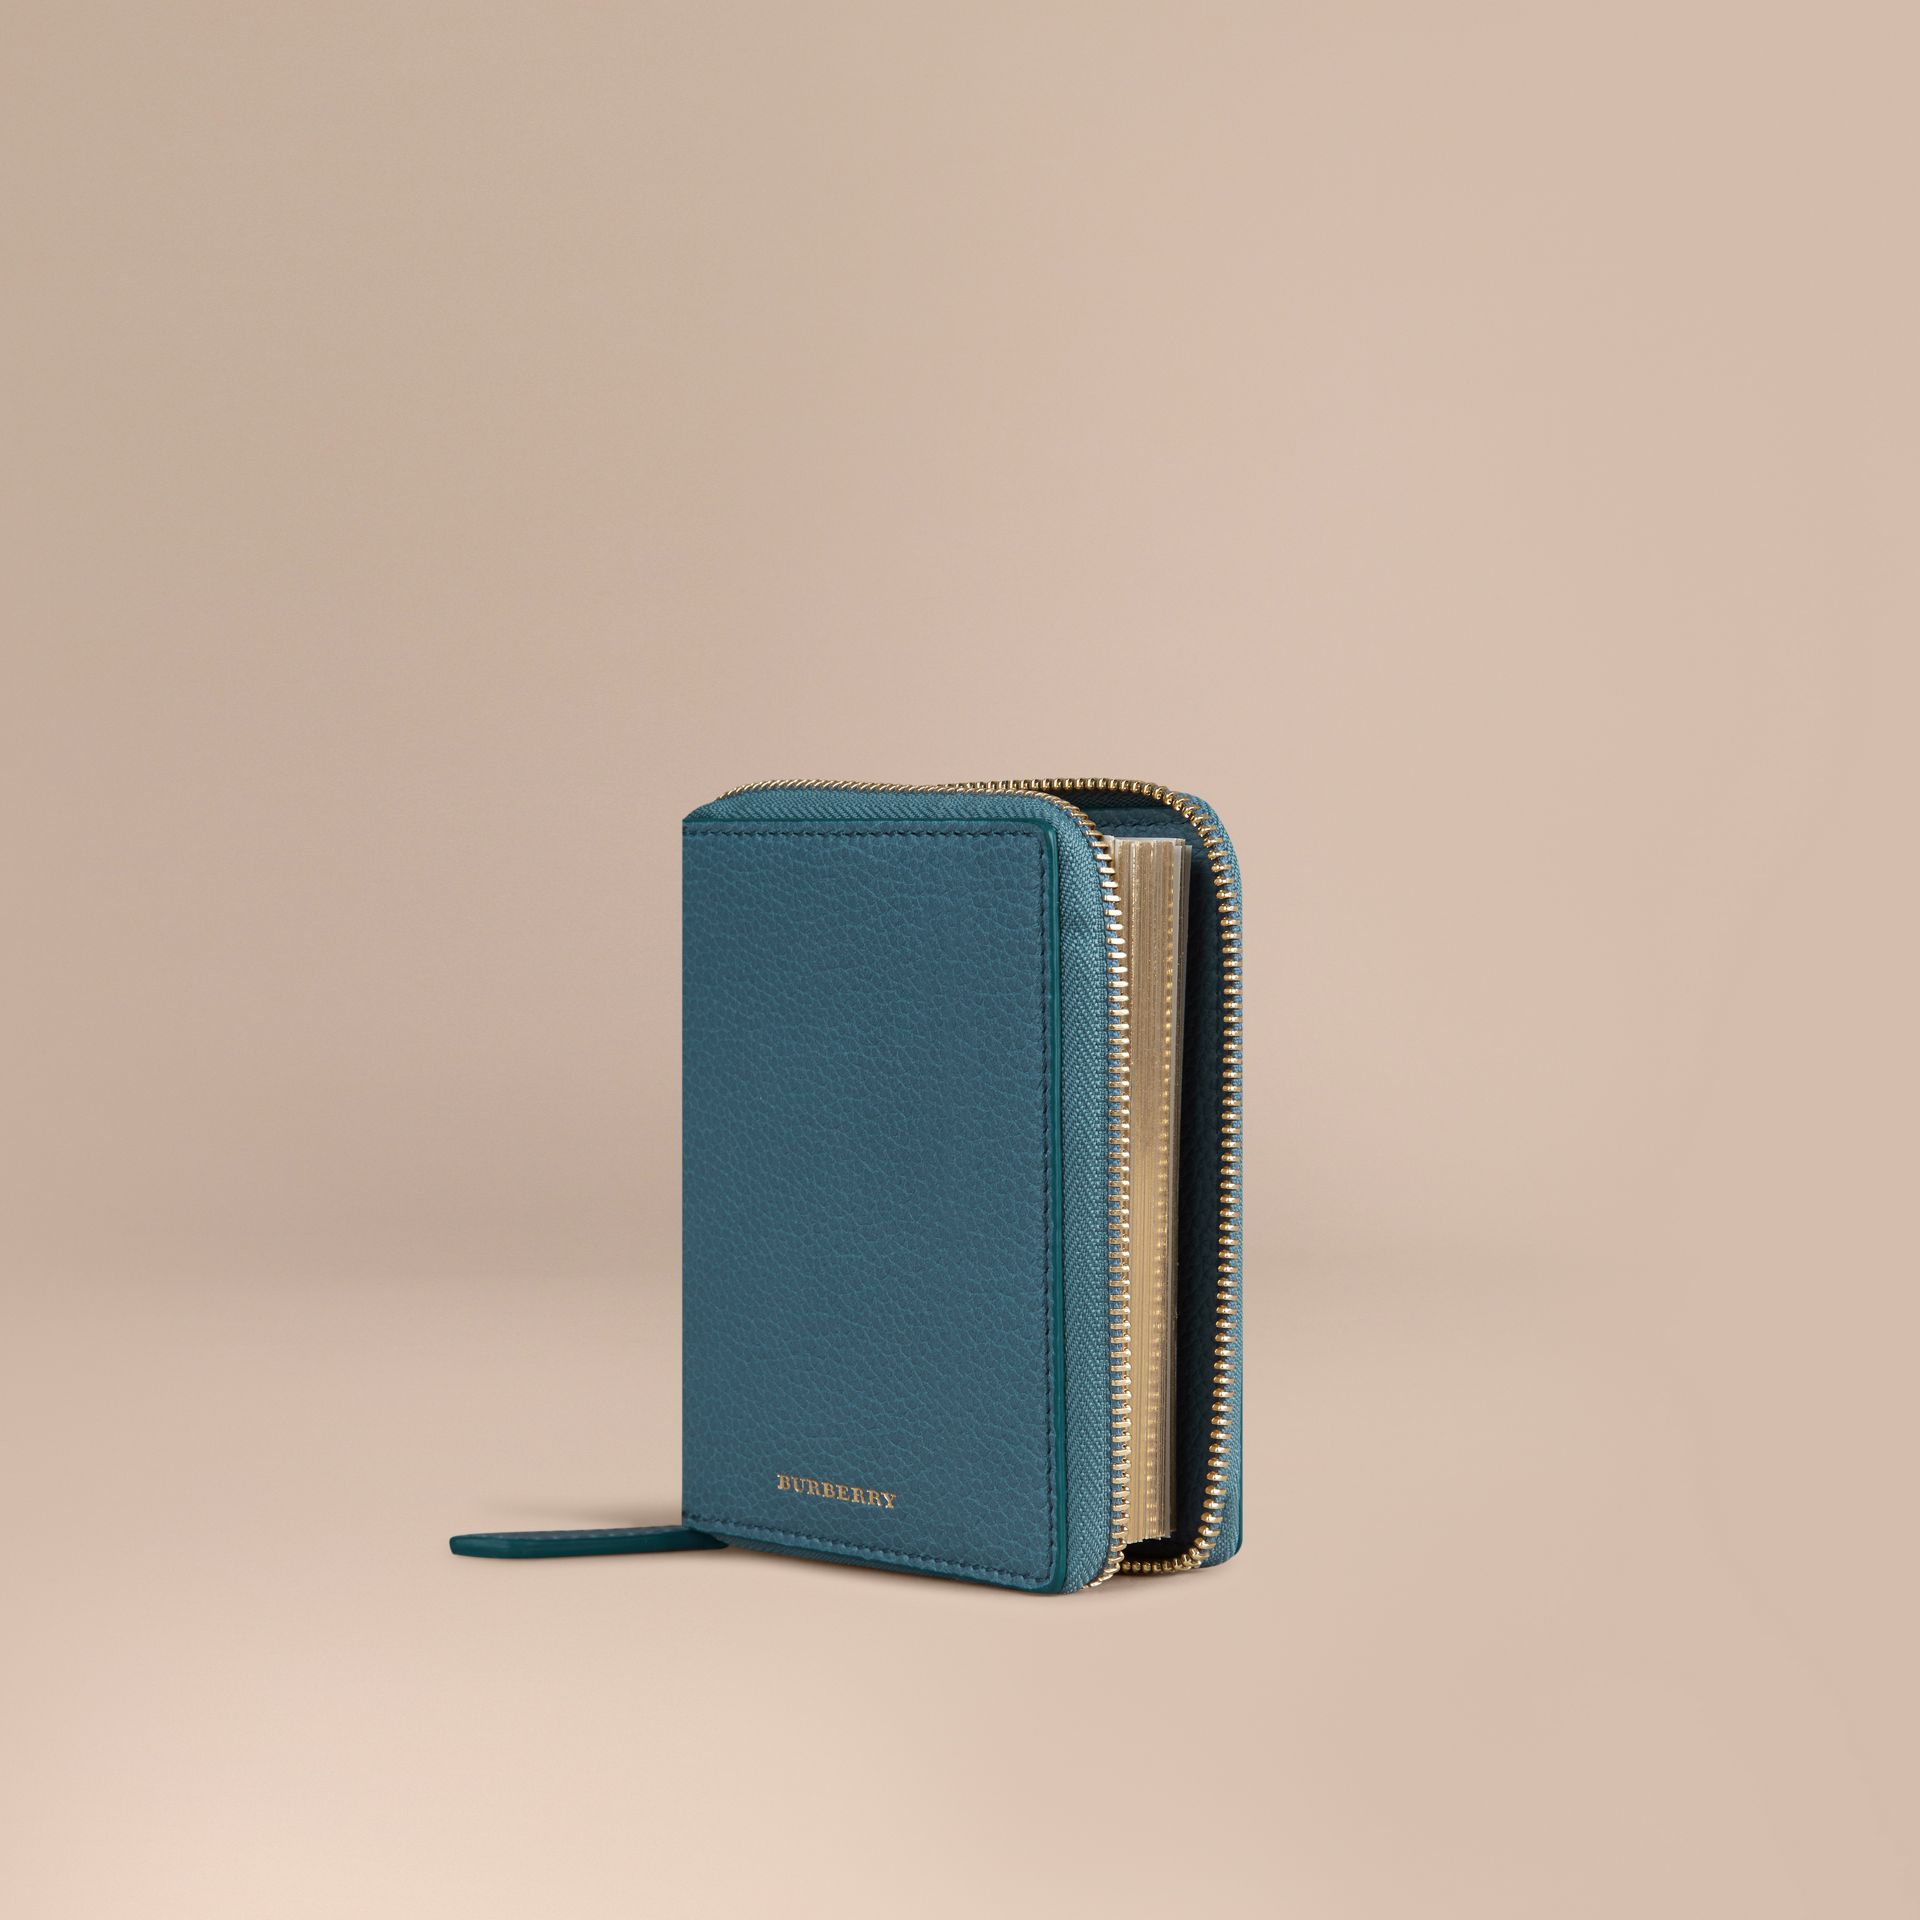 Dusty teal Ziparound Grainy Leather Mini Notebook Dusty Teal - gallery image 1